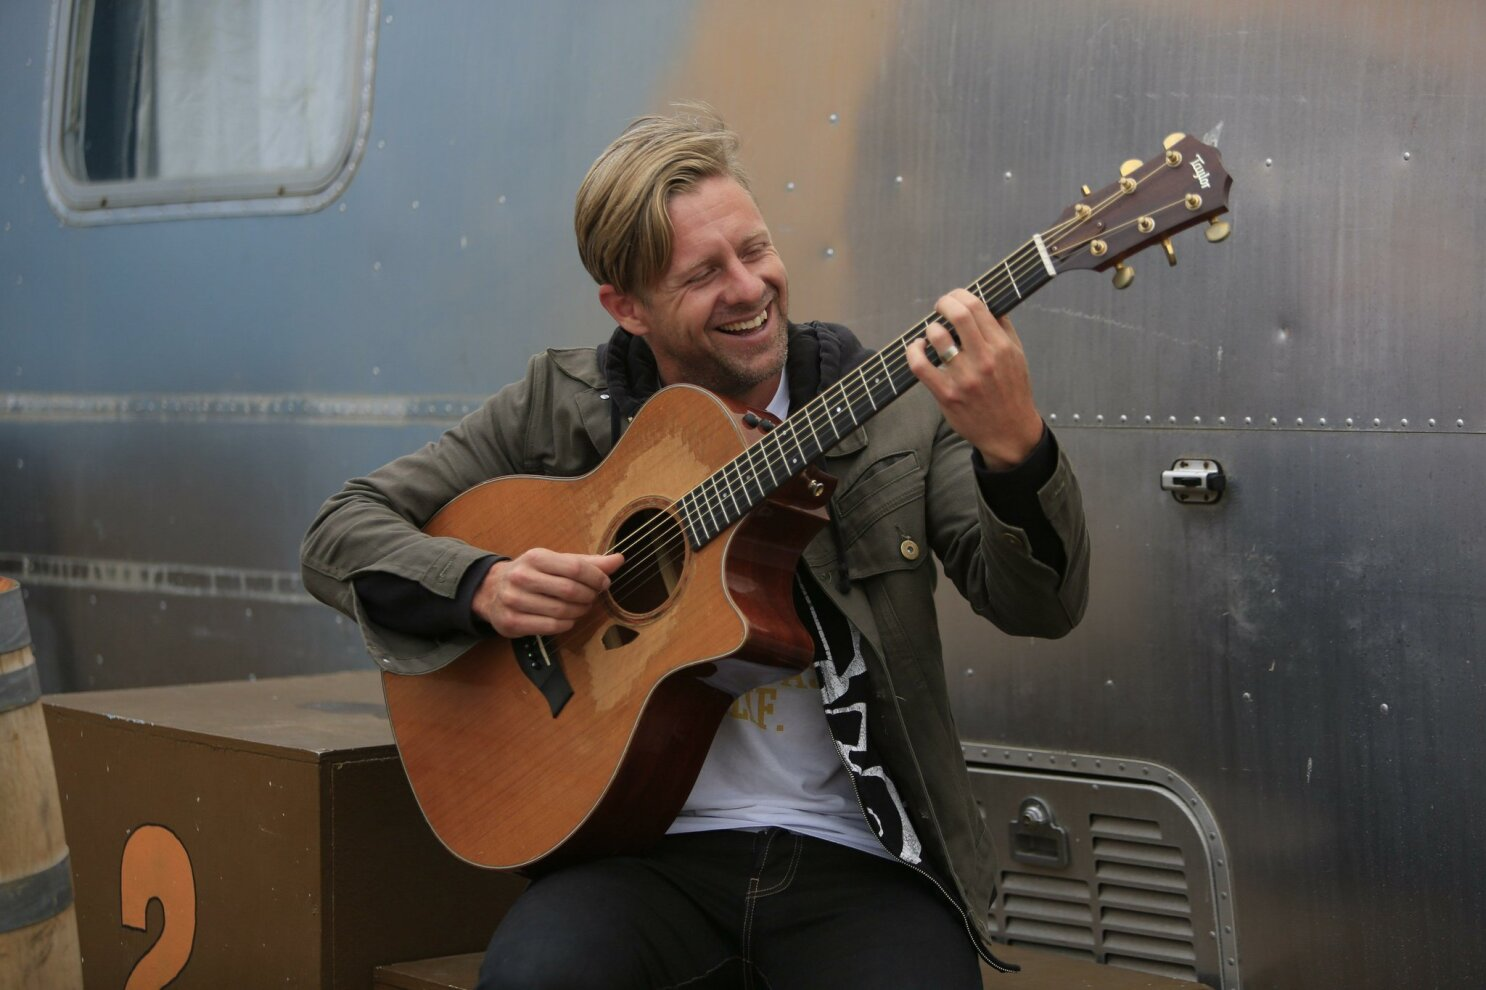 Switchfoots Jon Foreman Will Perform 25 Shows In 24 Hours The